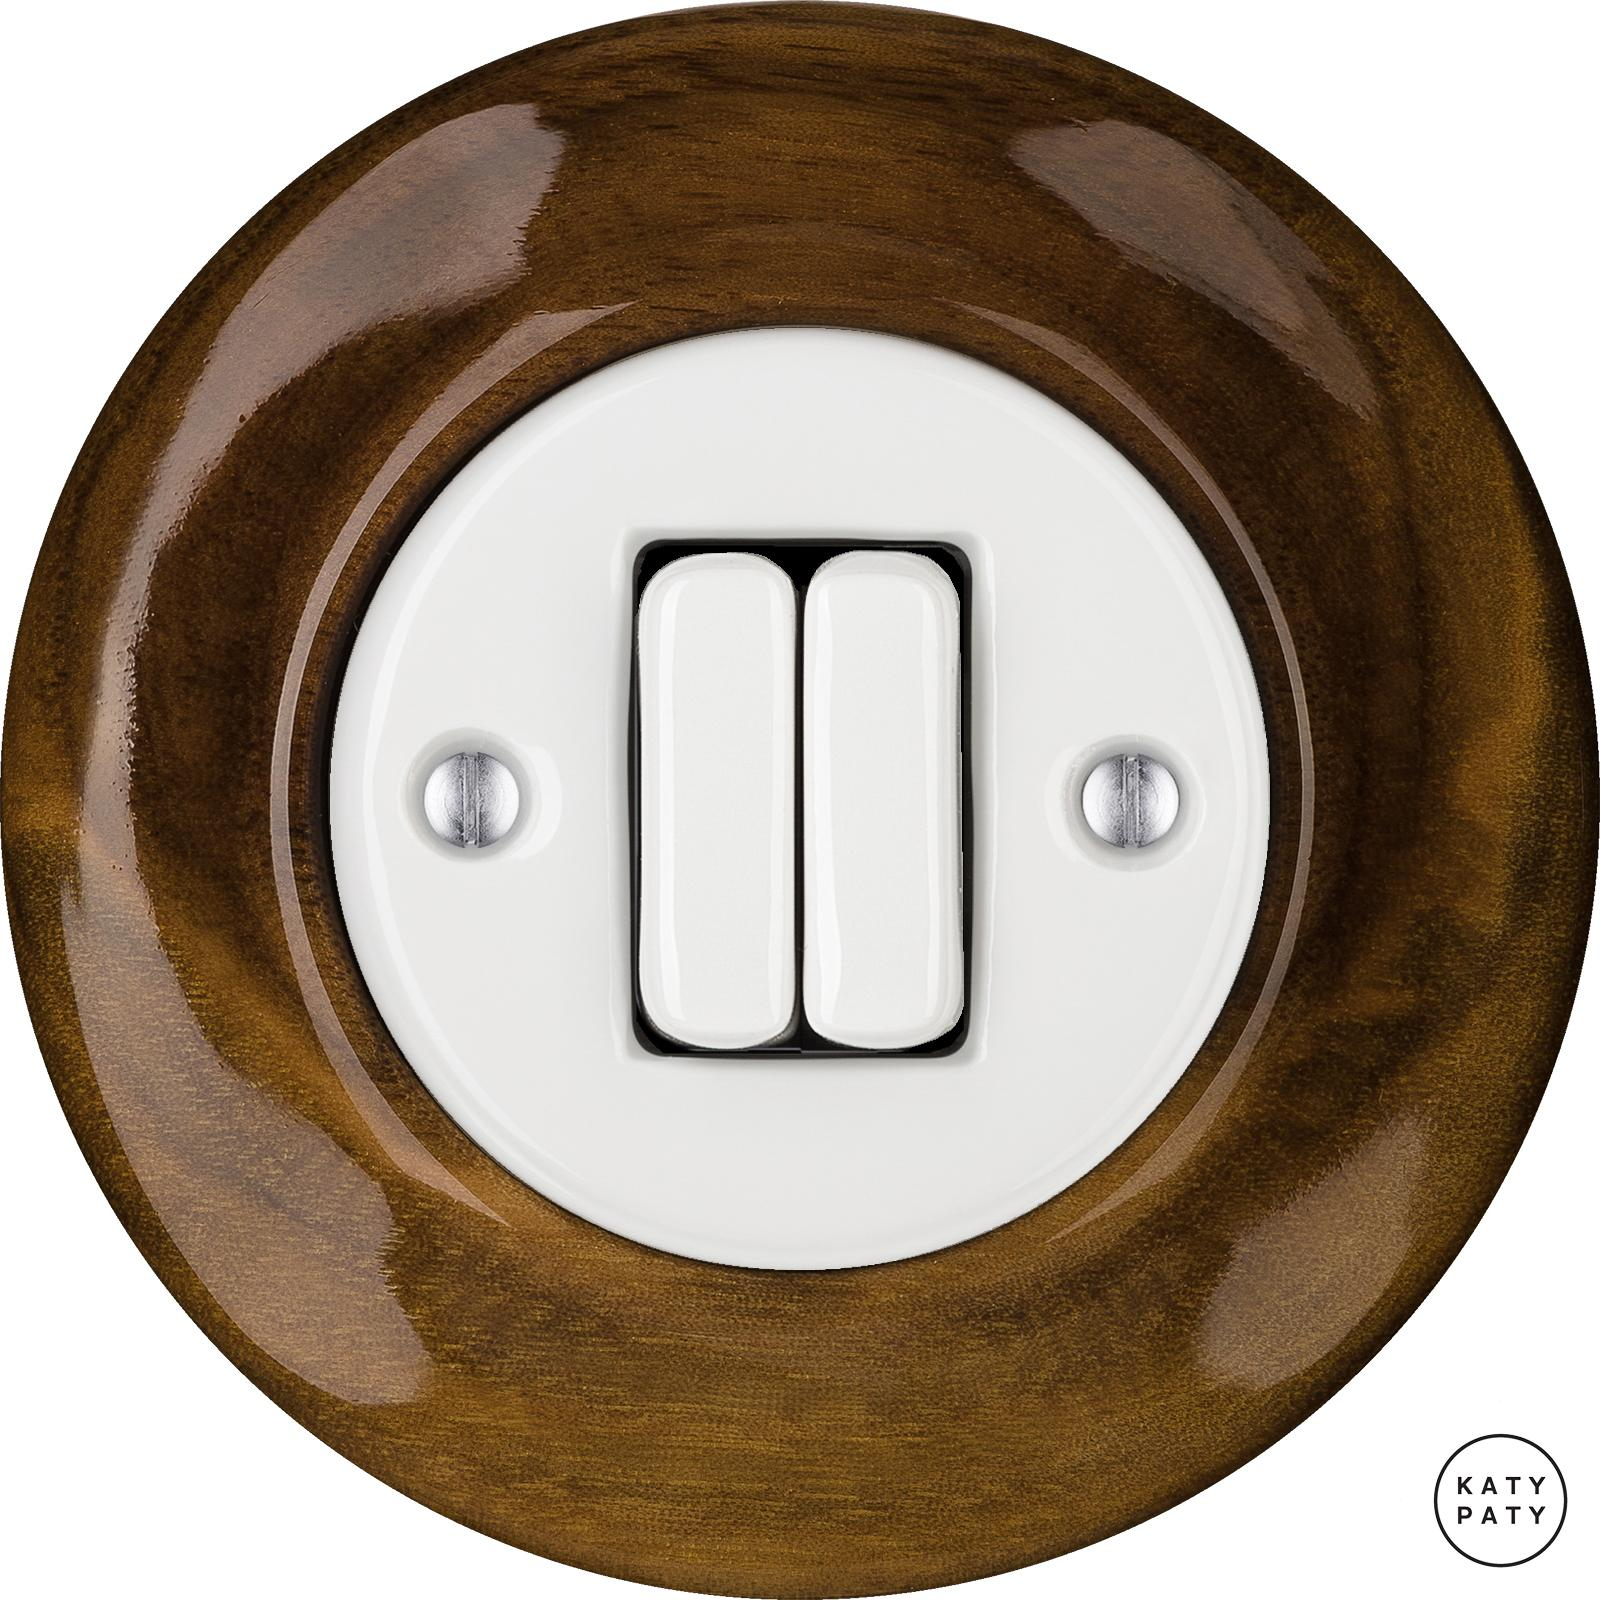 Porcelain switches - a double key ()  - NUC MAG | Katy Paty